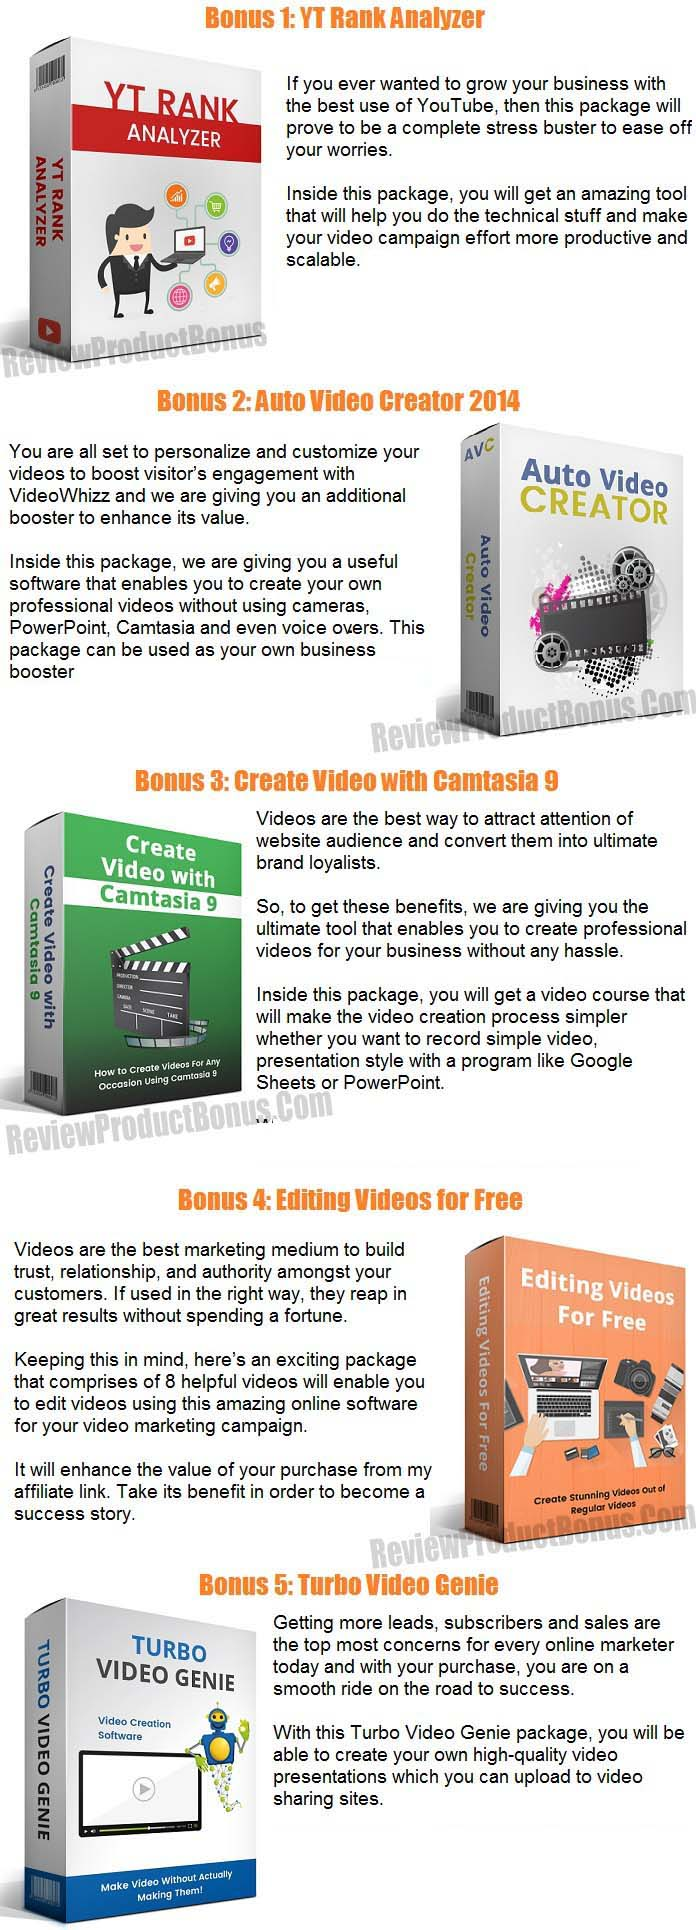 Reevio Video Maker 2.0 Bonus